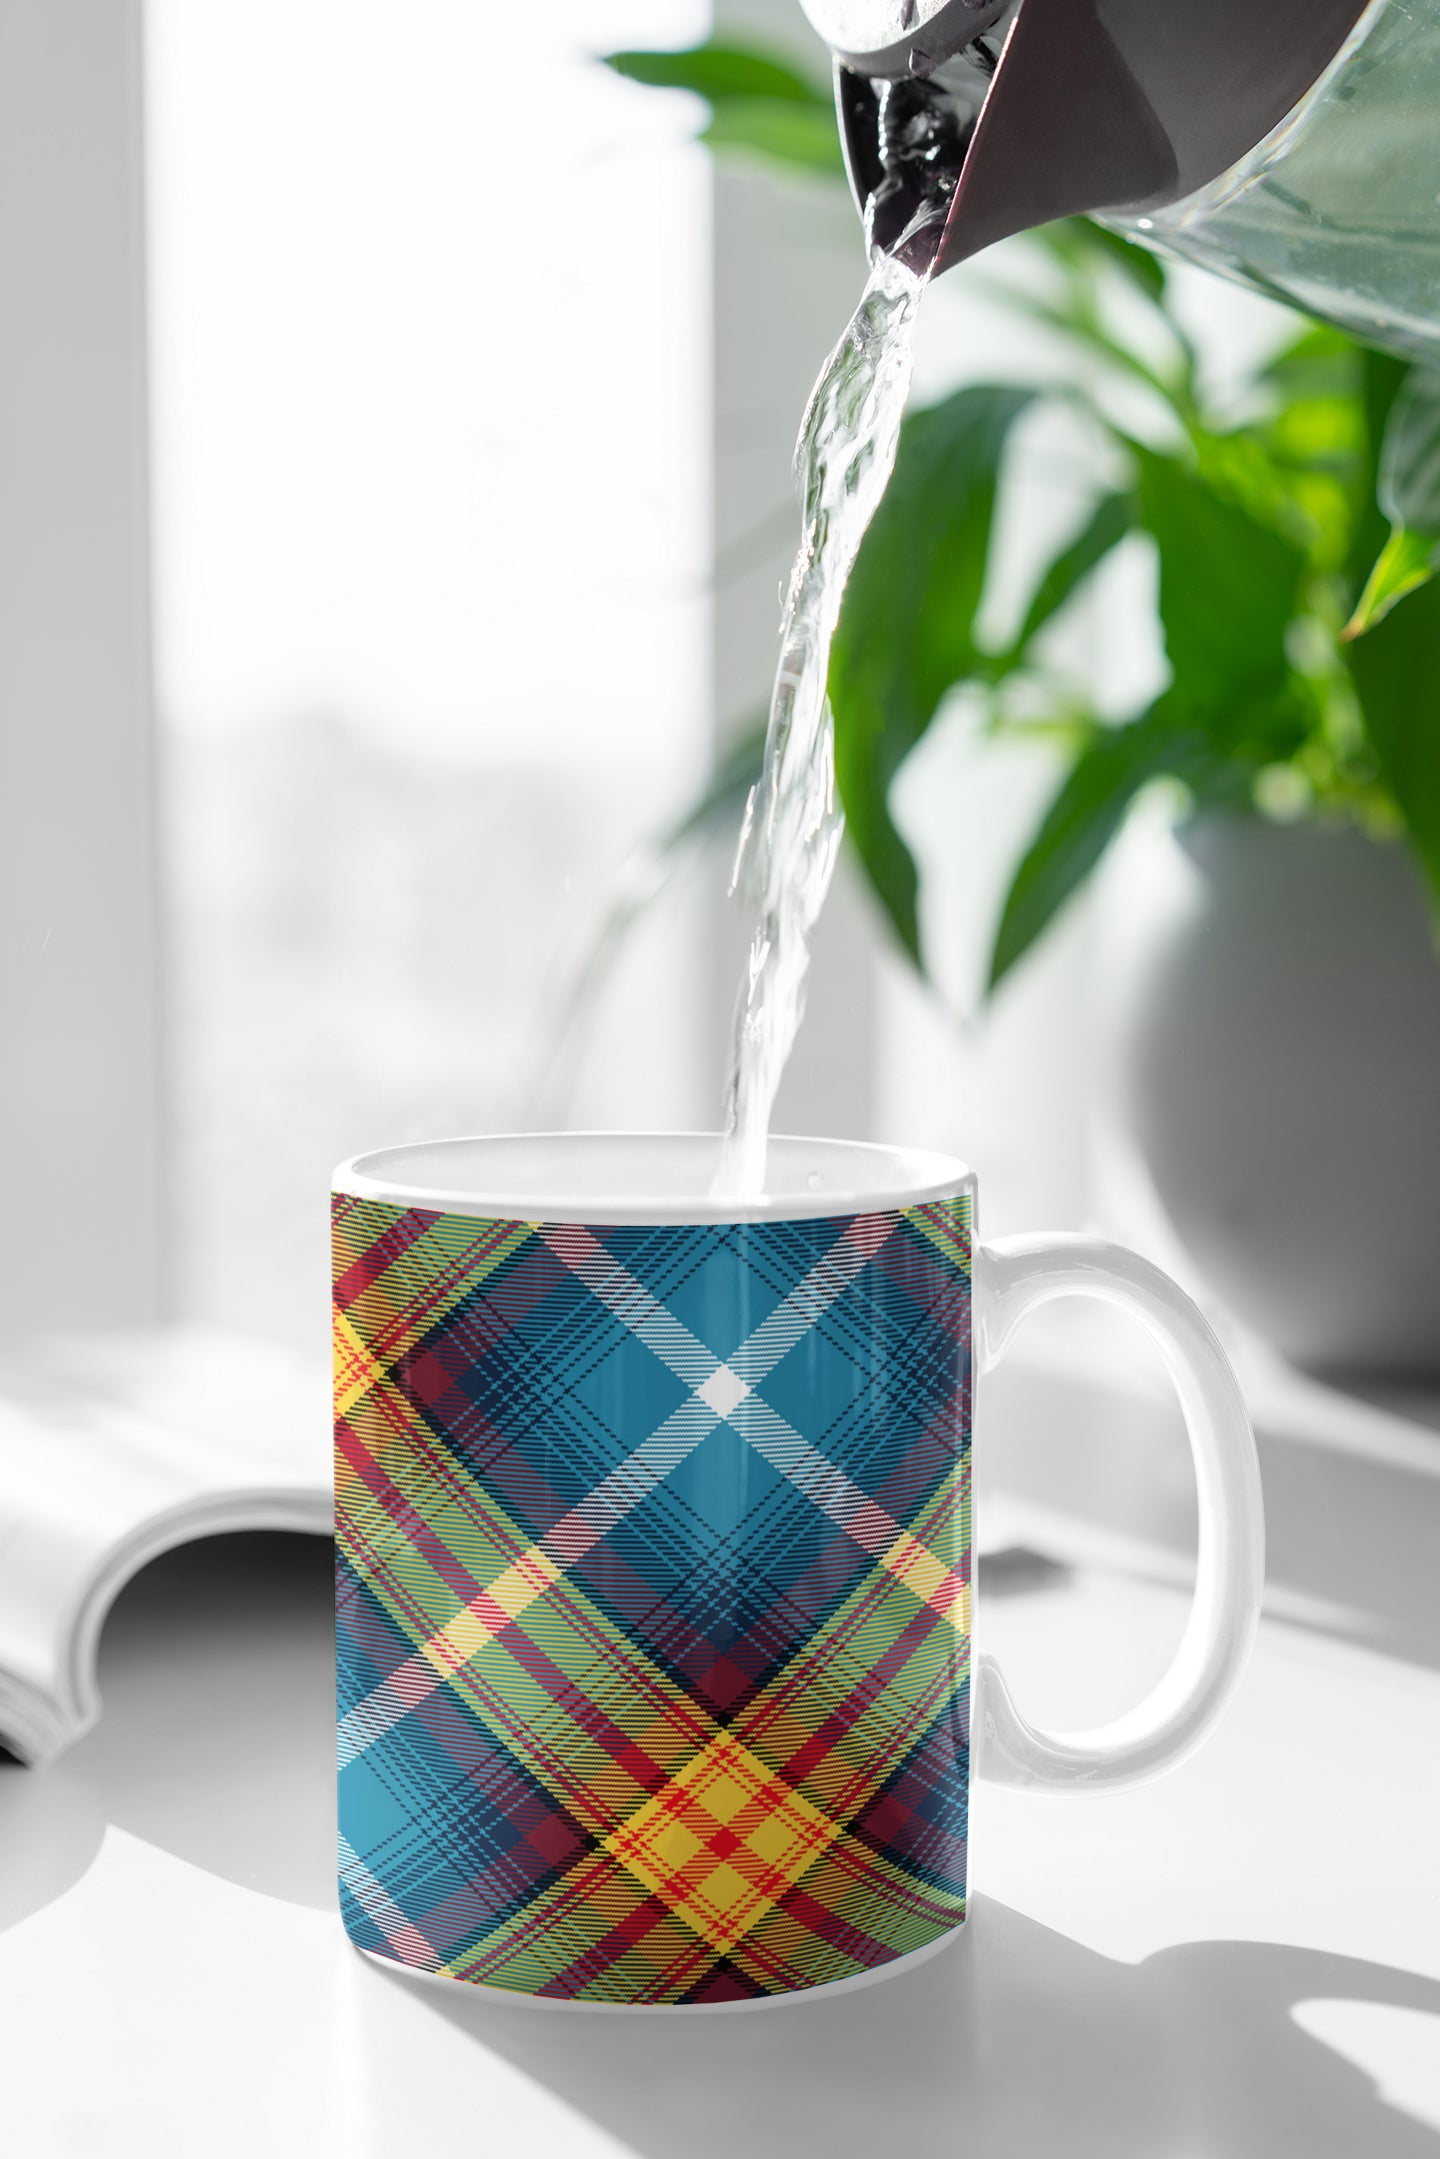 Declaration of Scottish Independence Arbroath 6th April 1320 Steven Patrick Sim Tartan mug for tea and coffee